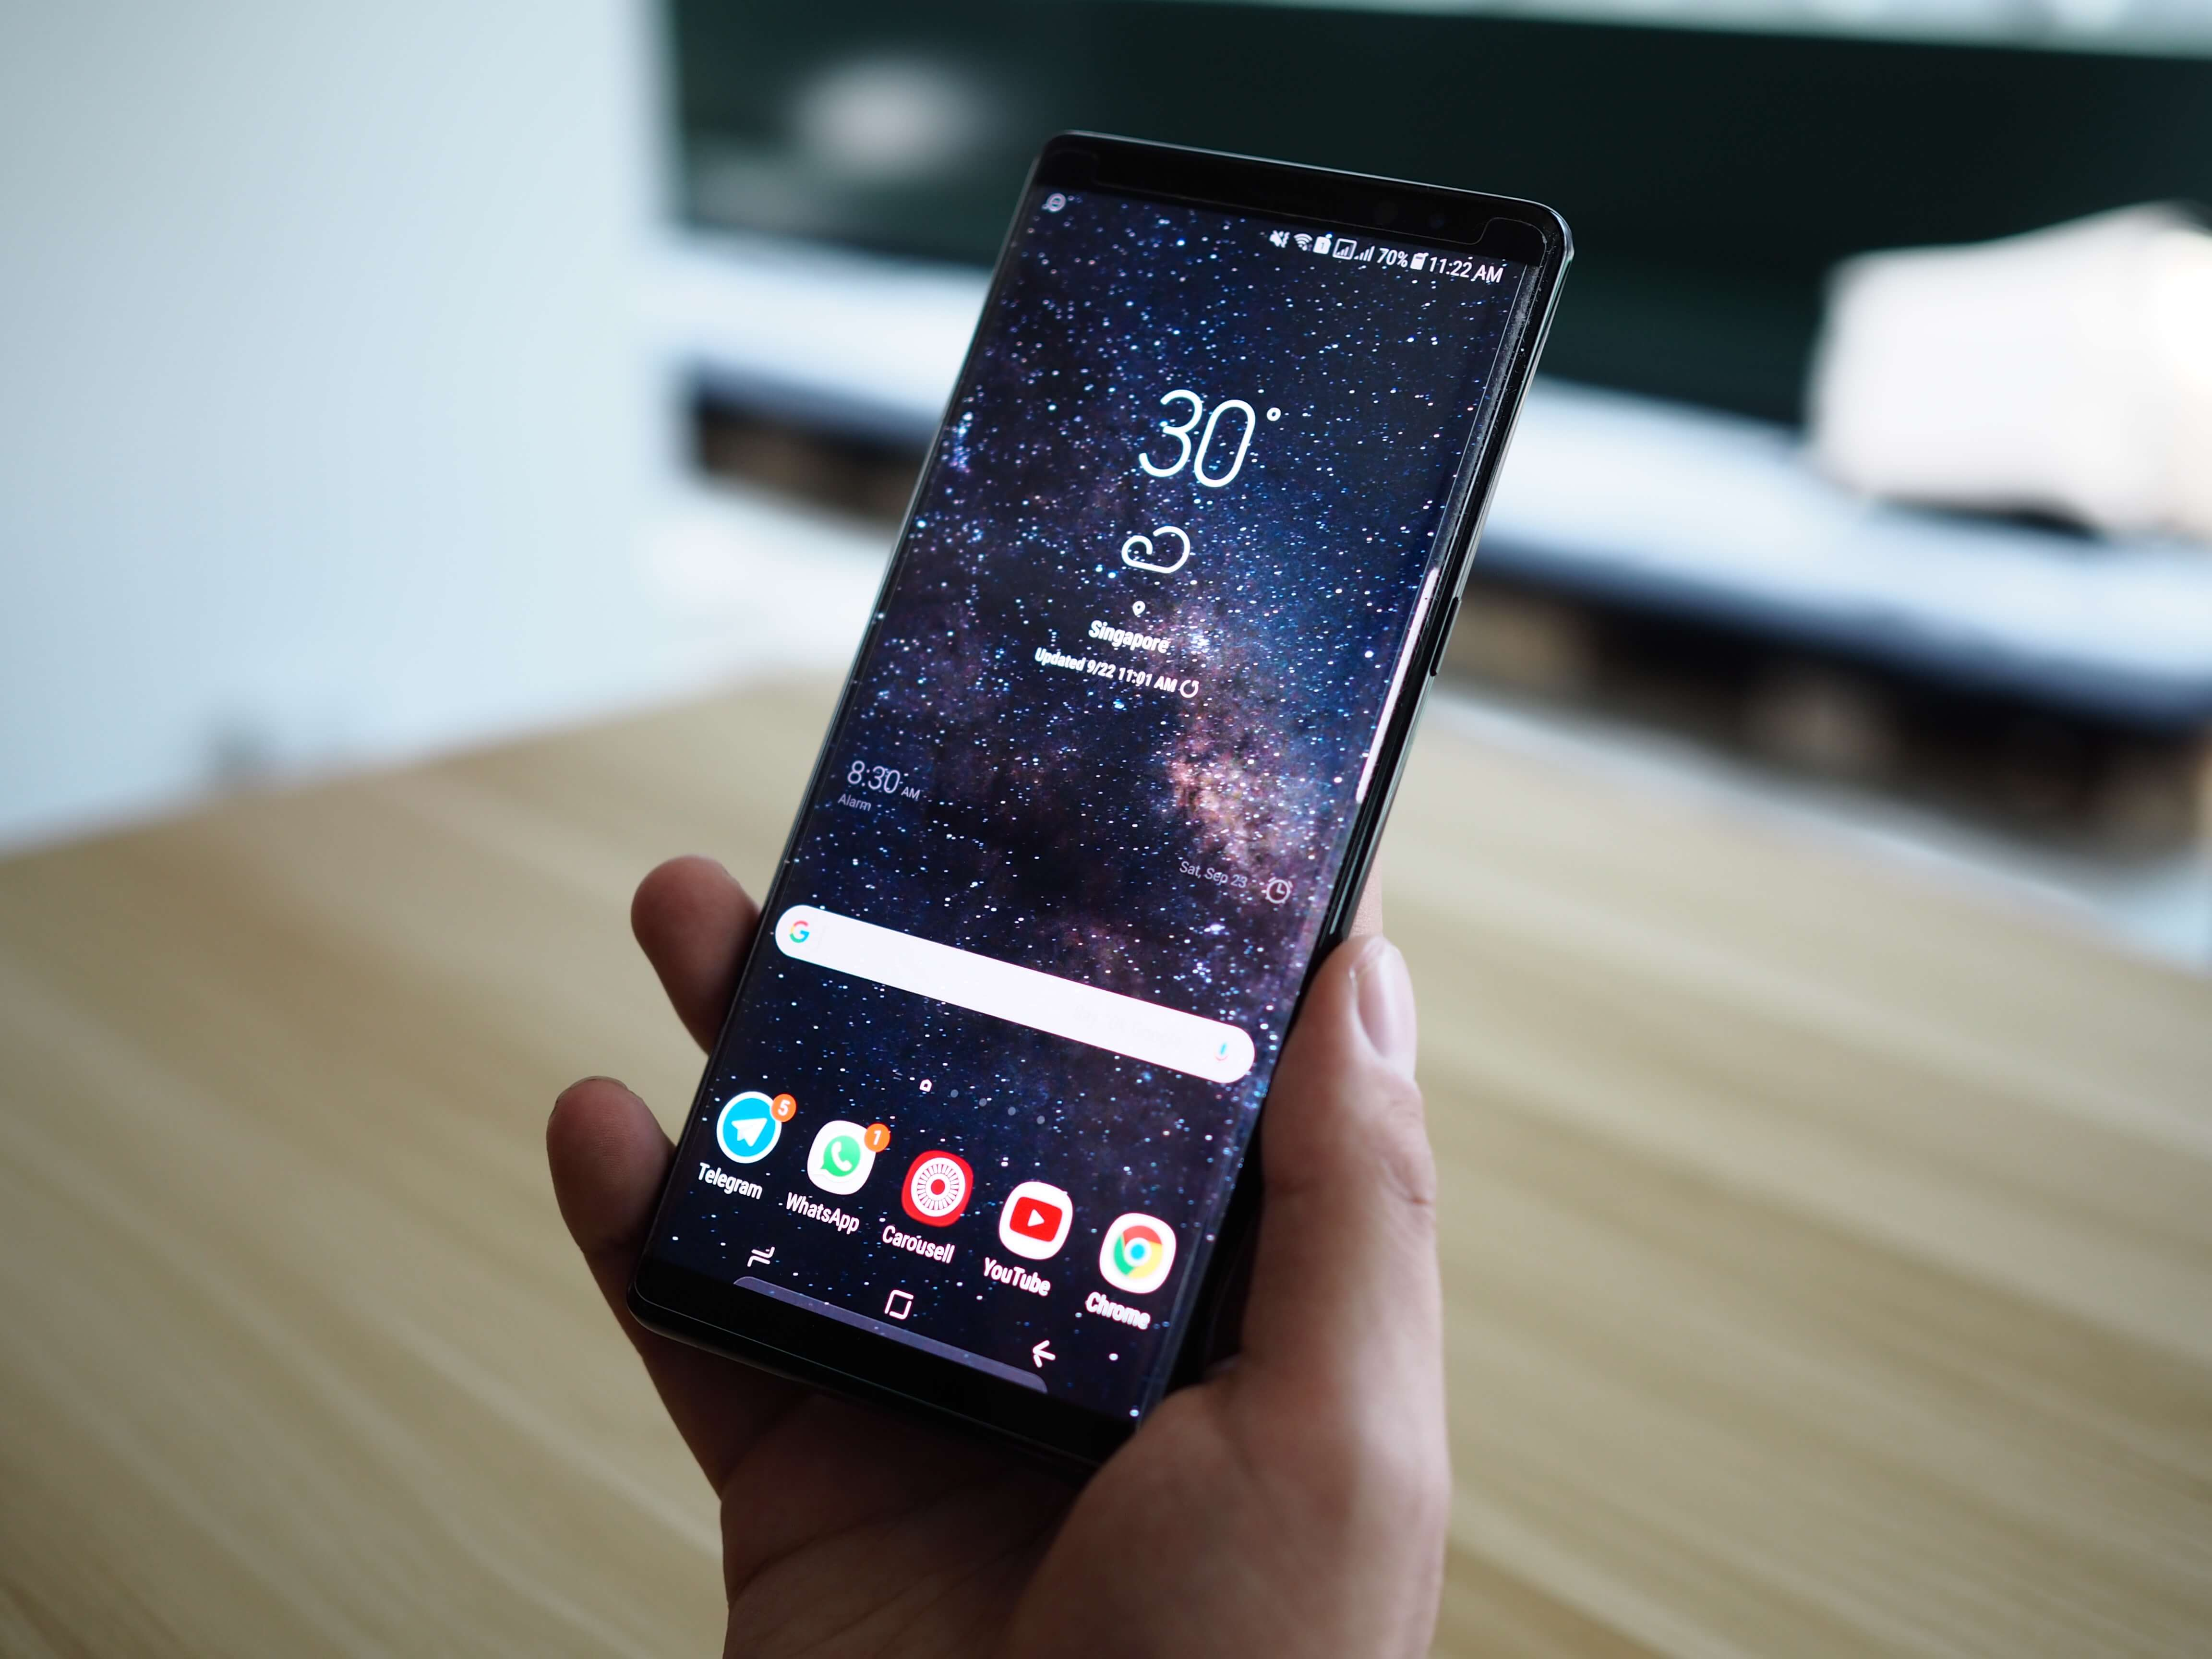 A review about Samsung Galaxy Note 8